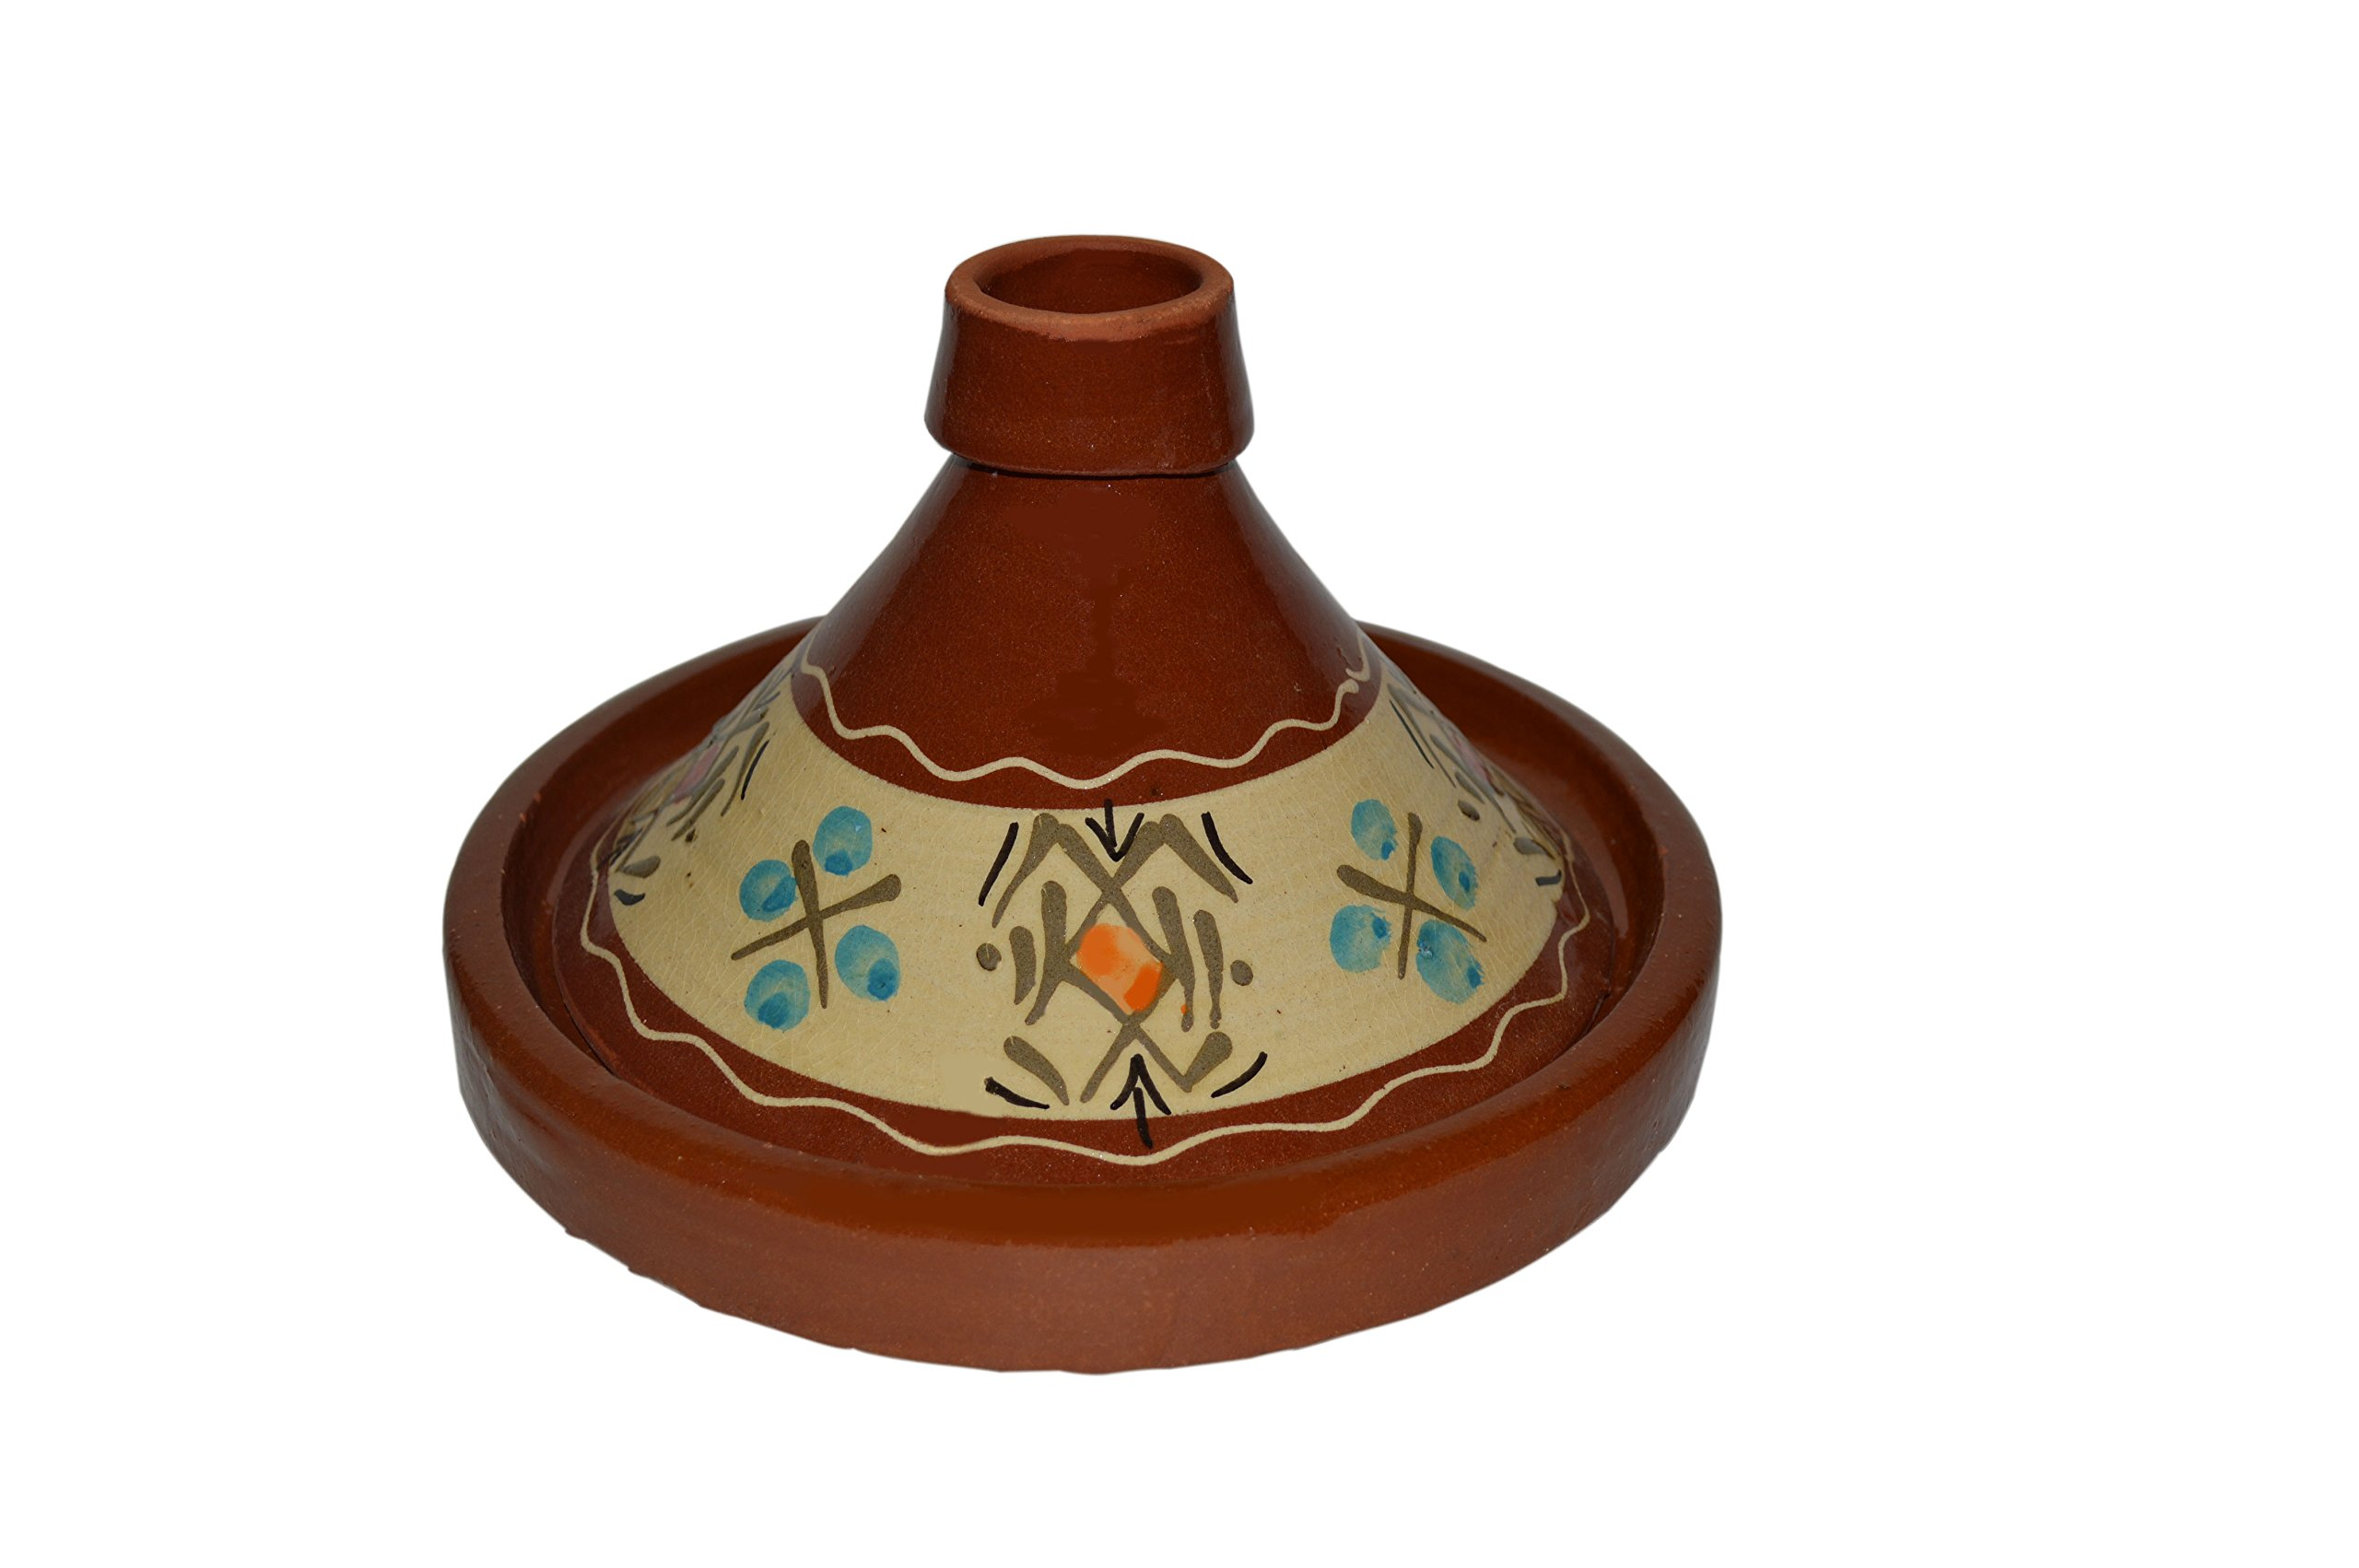 Moroccan Simple Small Cooking Tagine Lead Free Terracotta Cookware Pot Baker